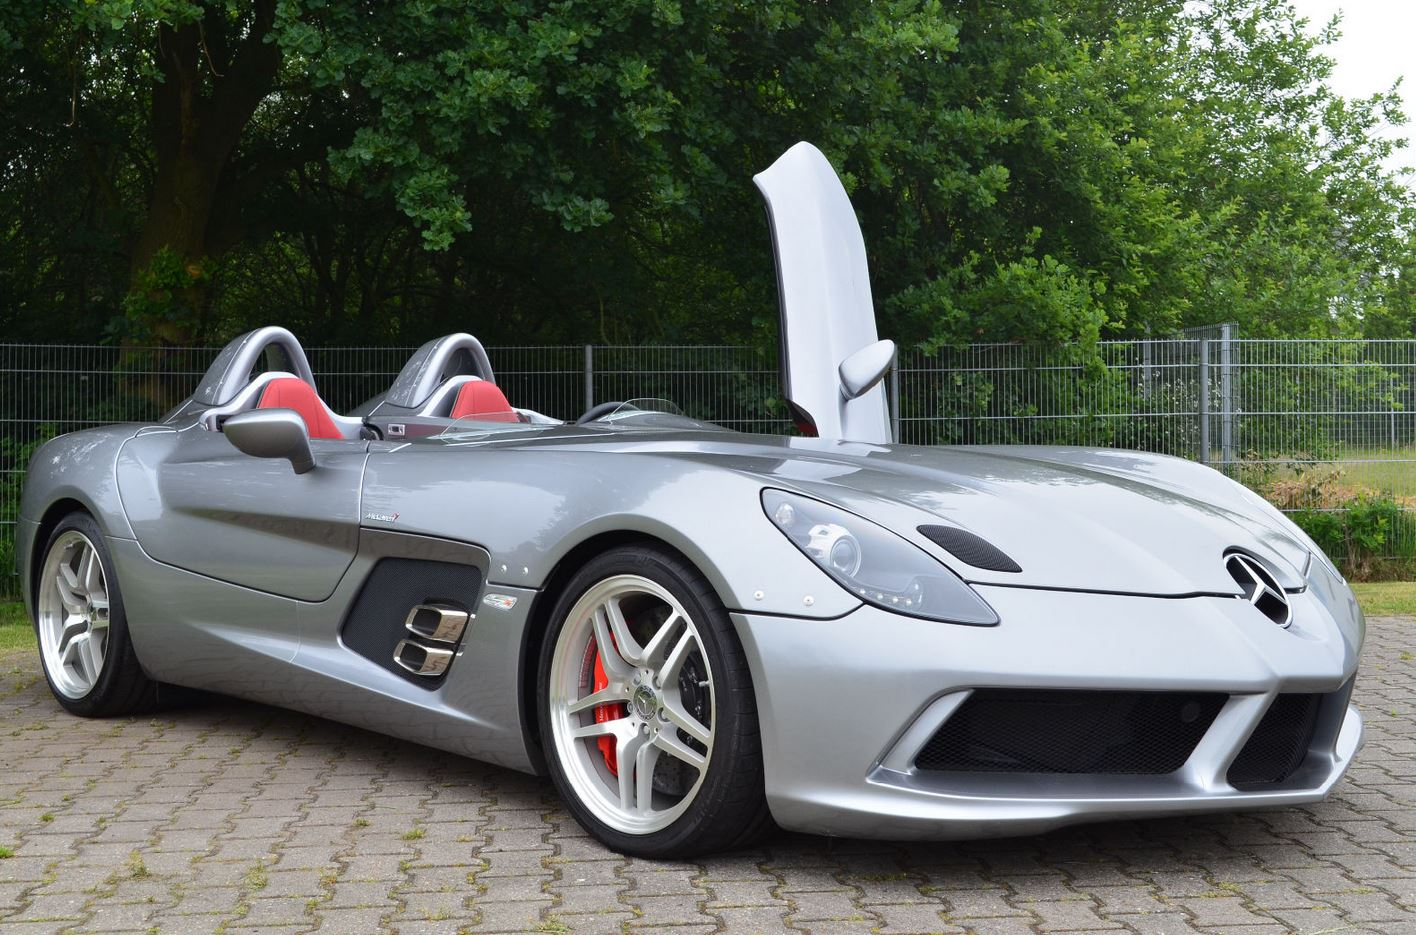 Mint mercedes slr stirling moss for sale at 4 million for 2 5 million mercedes benz